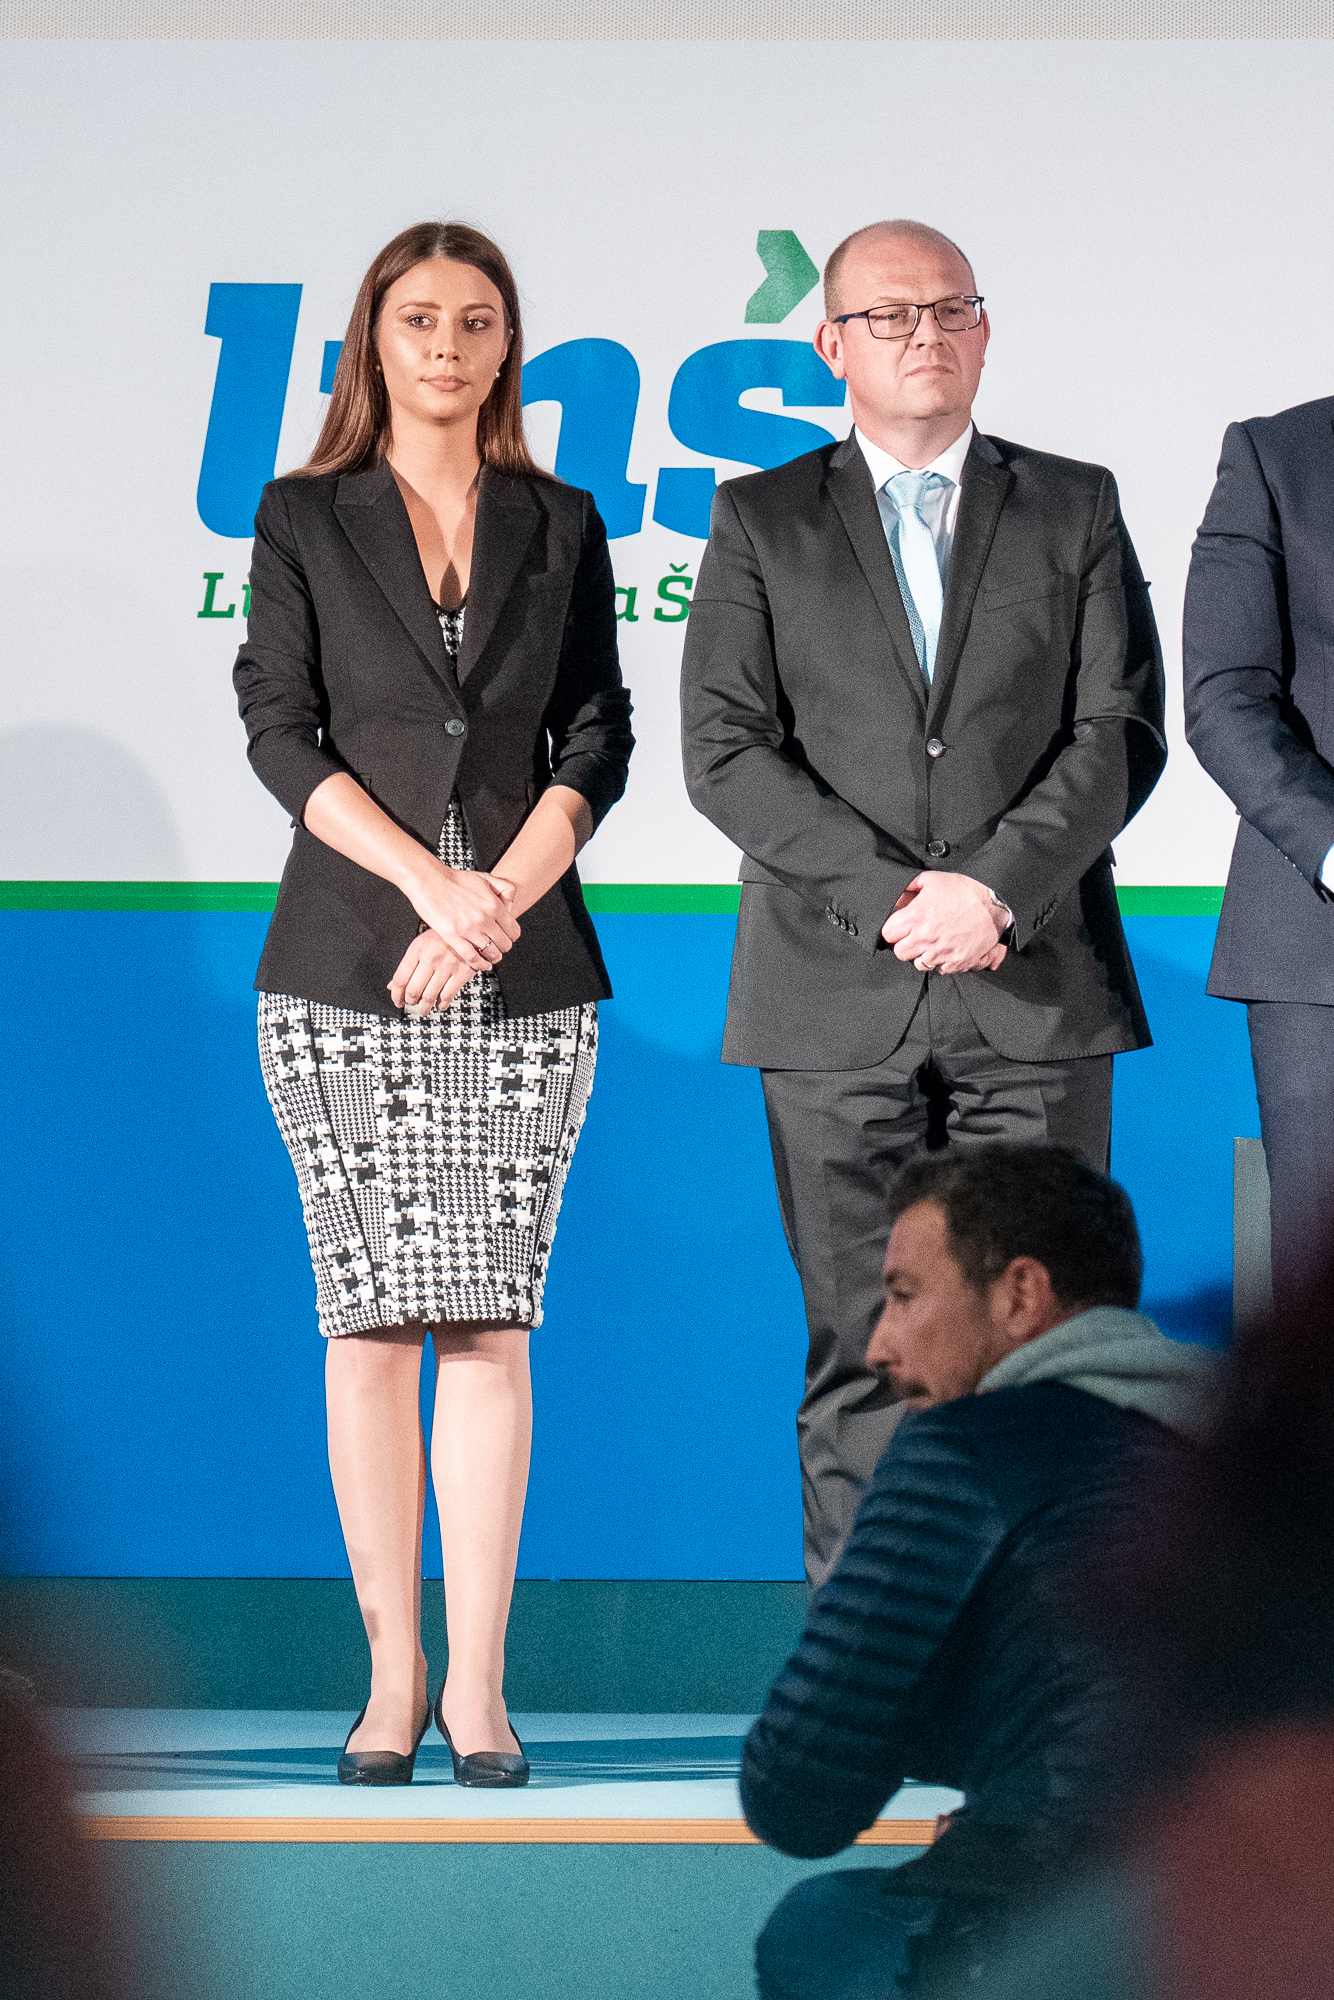 Irena Joveva and dr. Klemen Grošelj on the stage on the Fifth Congress of Lista Marjana Šarca in Trbovlje